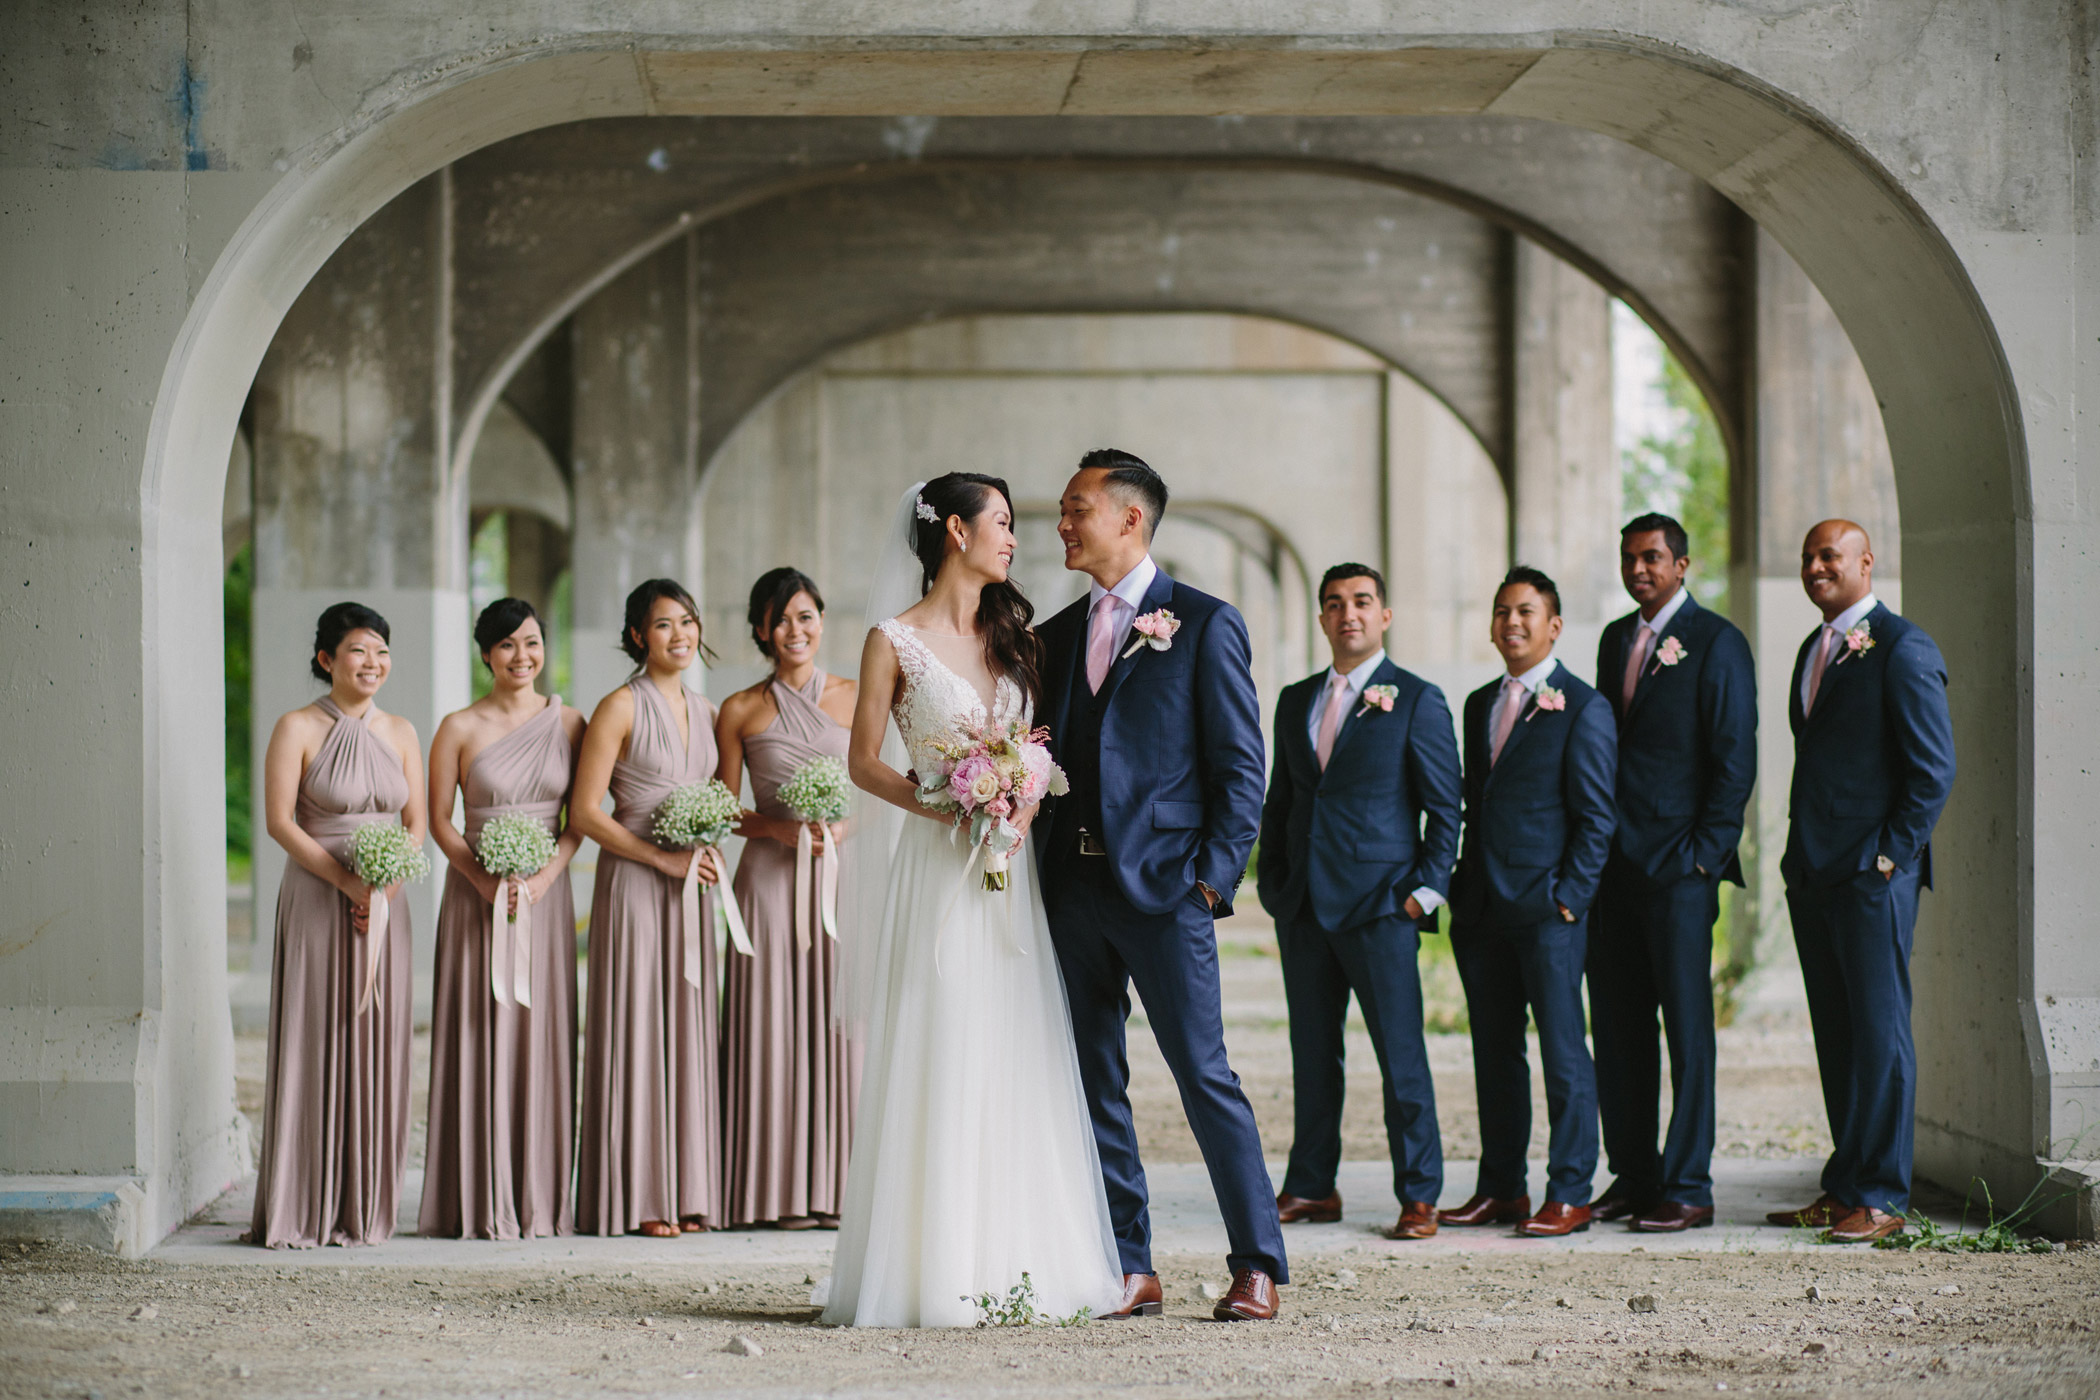 Granville Street Bridge Wedding Party